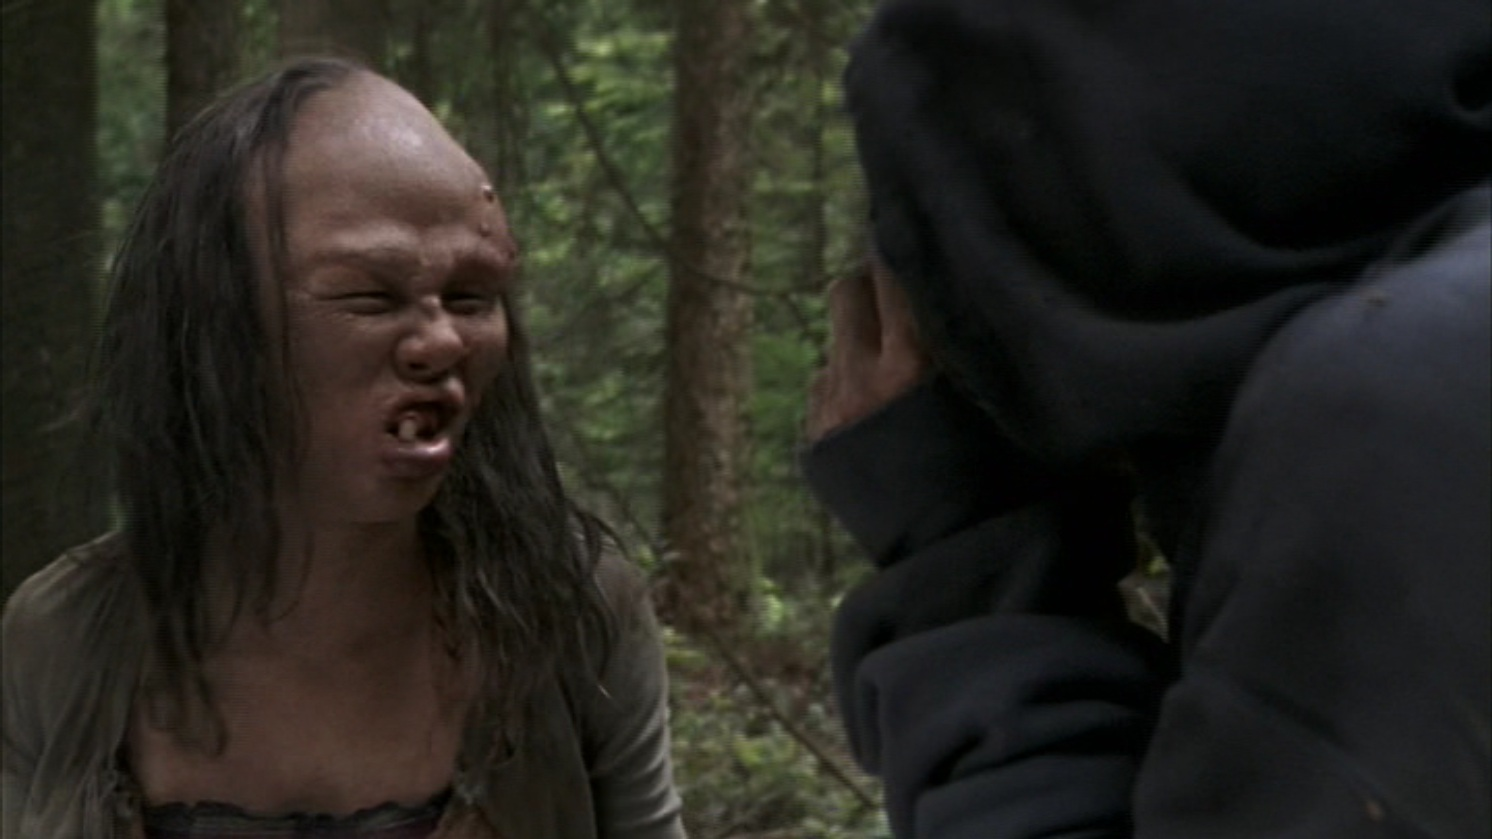 Happyotter: WRONG TURN 2: DEAD END (2007)